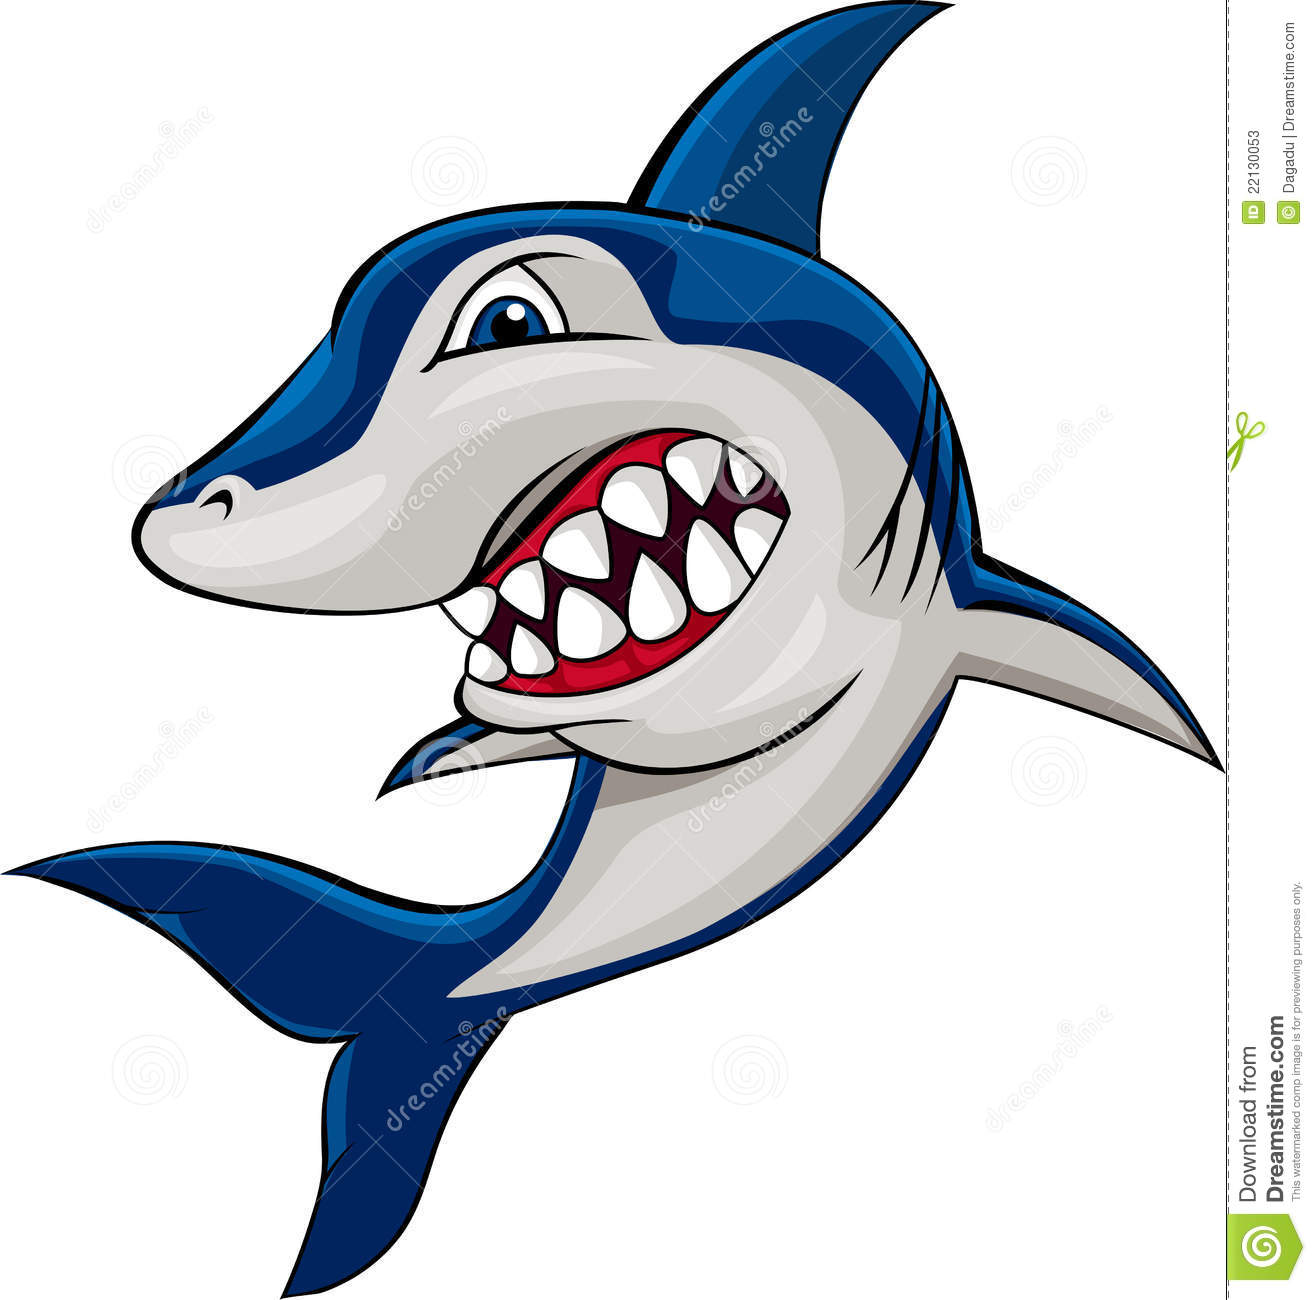 Angry shark clipart - photo#3